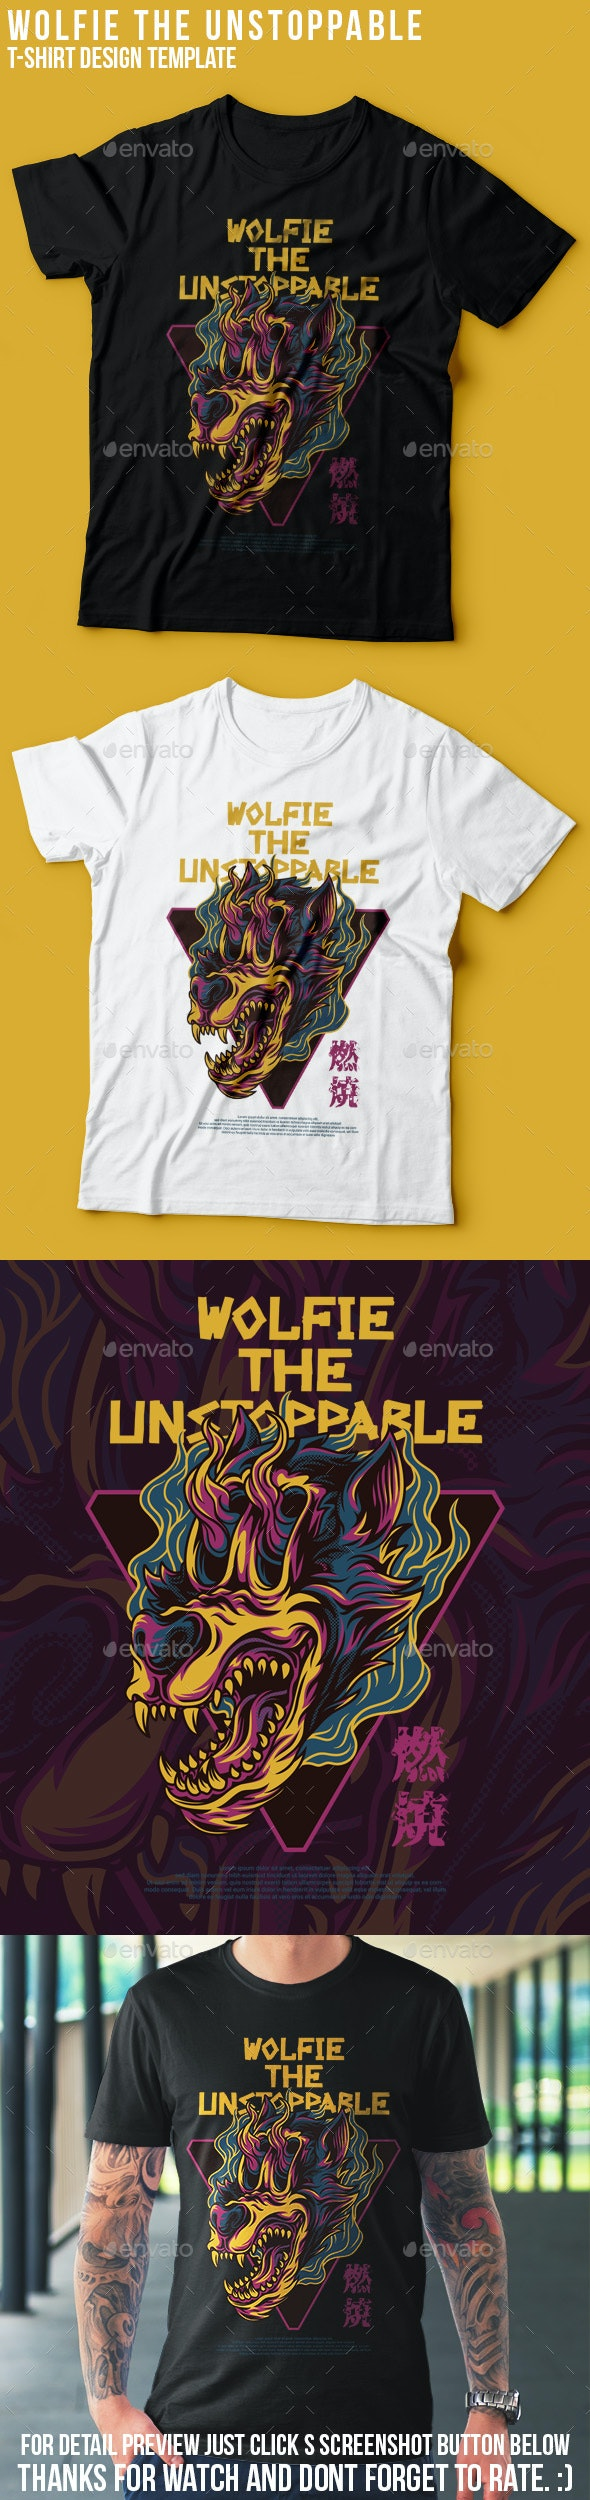 Wolfie the Unstoppable T-Shirt Design - Sports & Teams T-Shirts